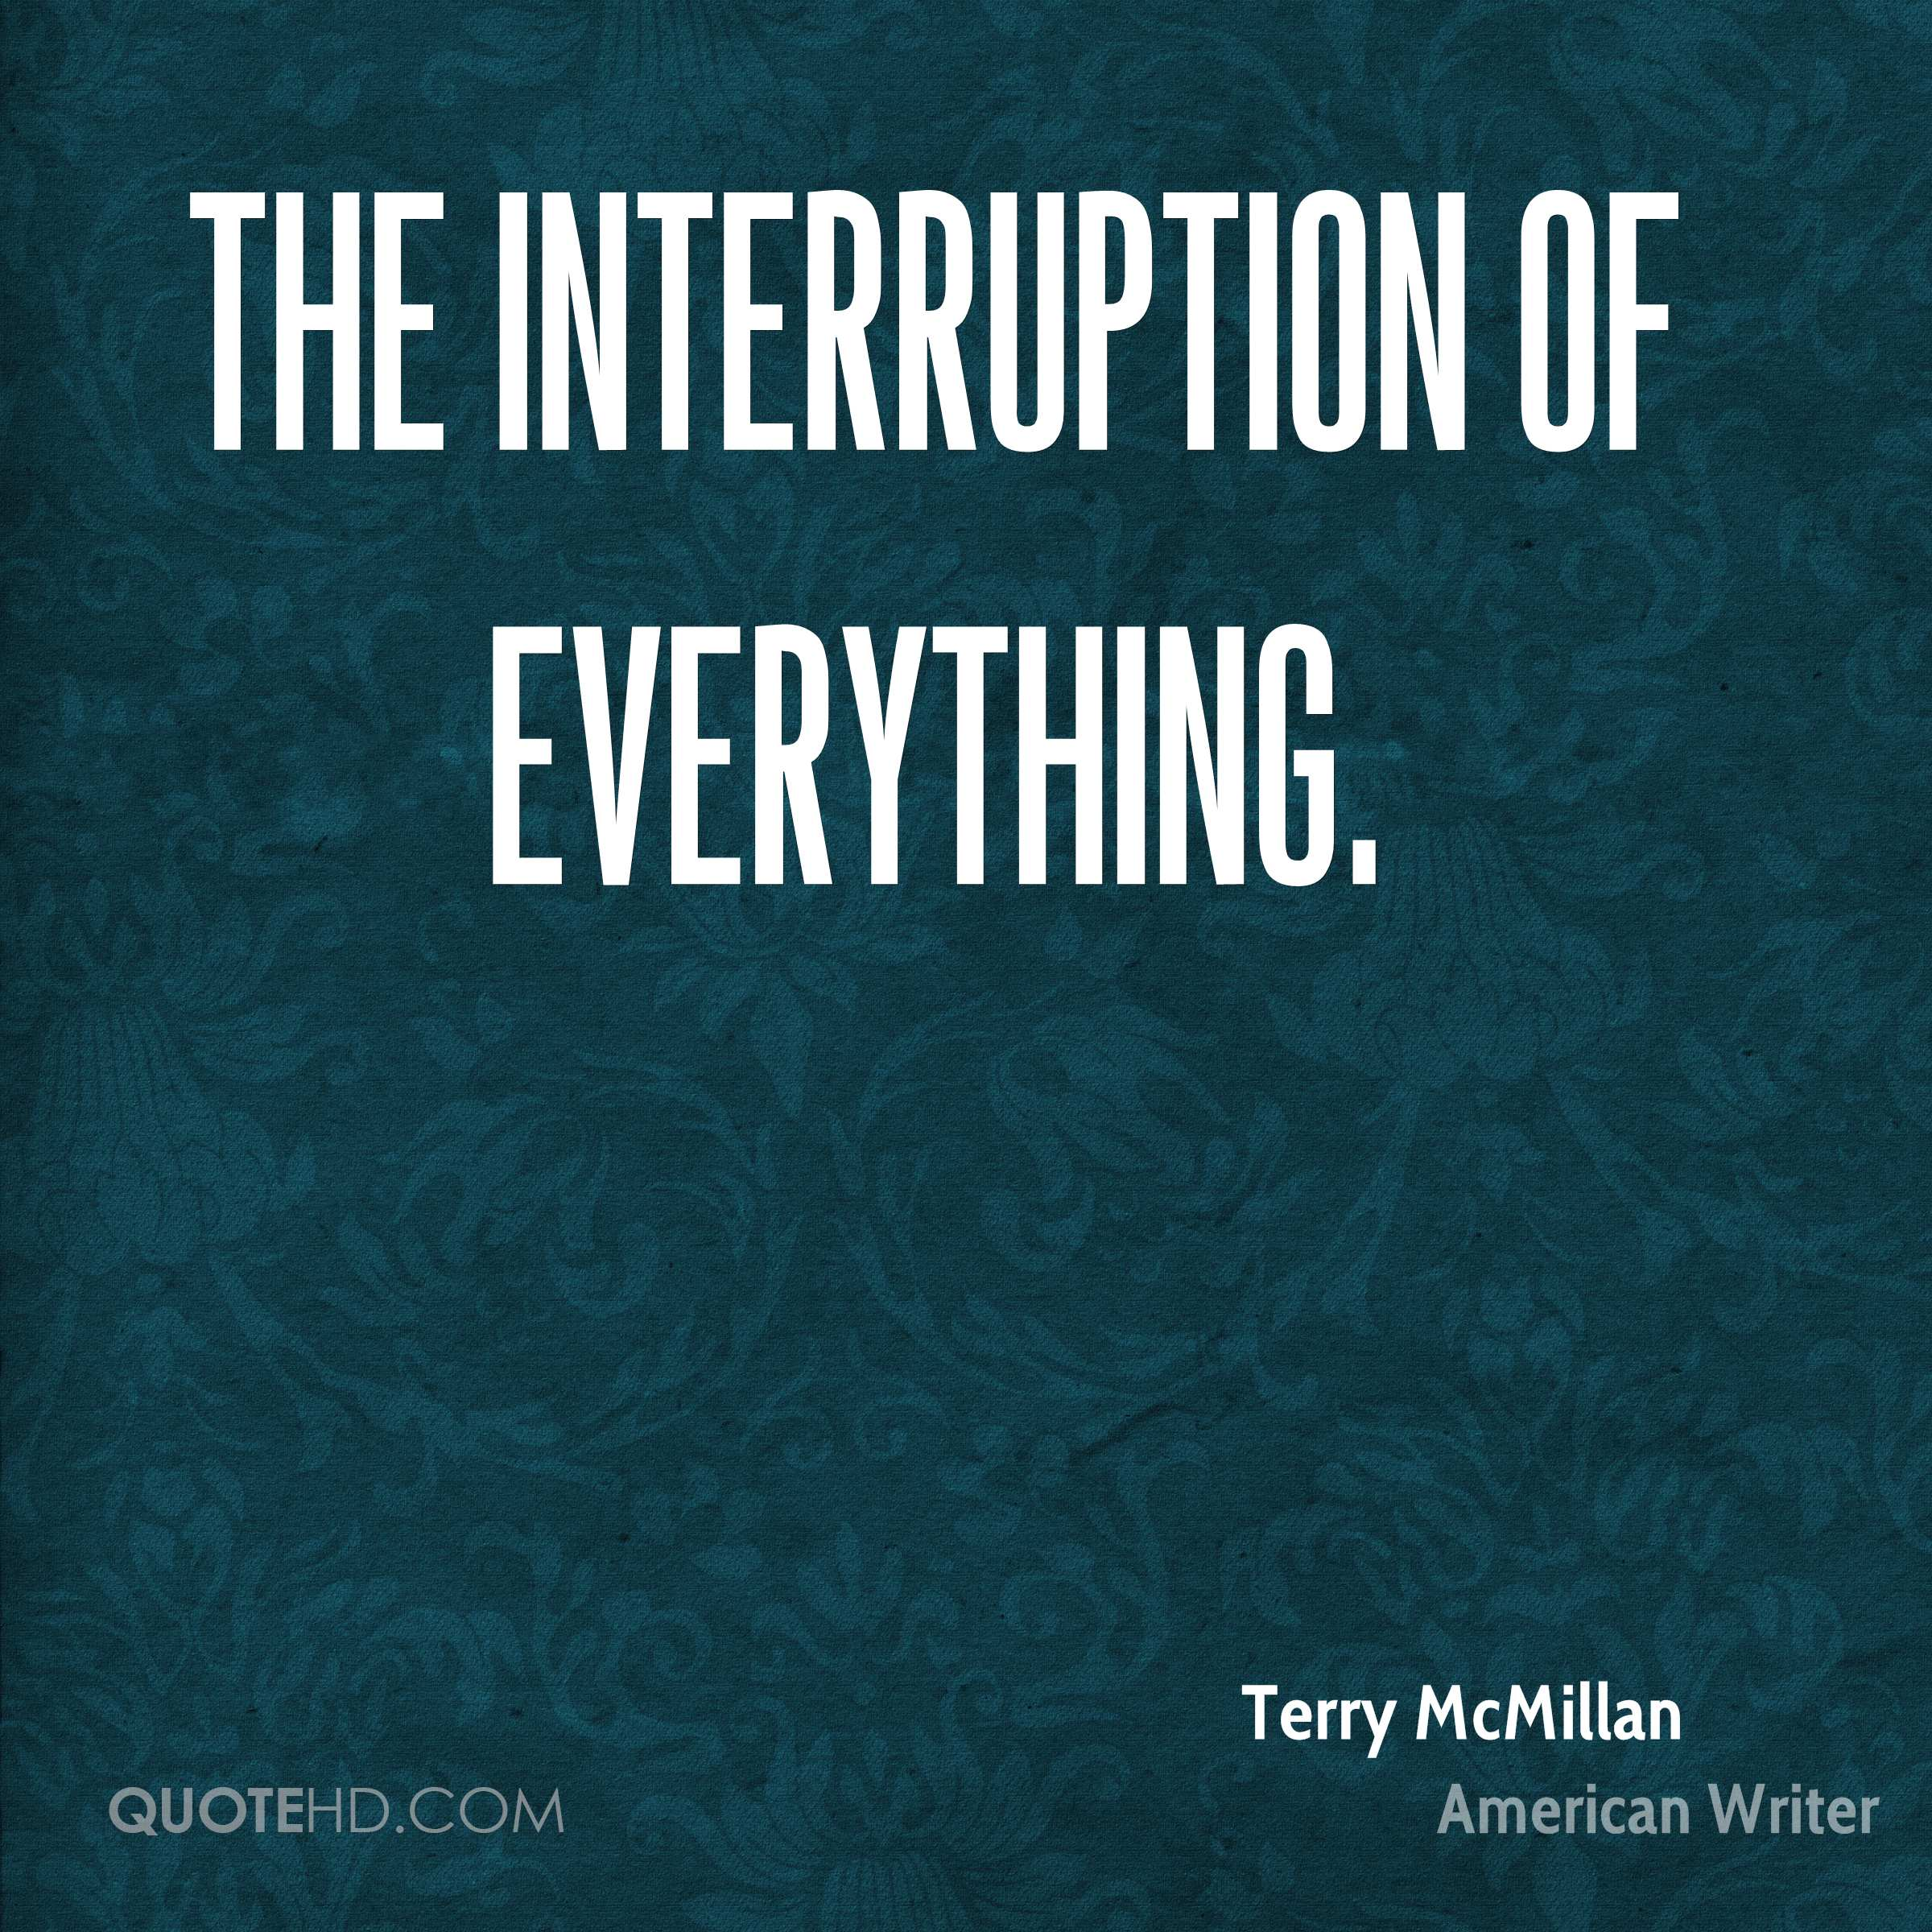 The Interruption of Everything.